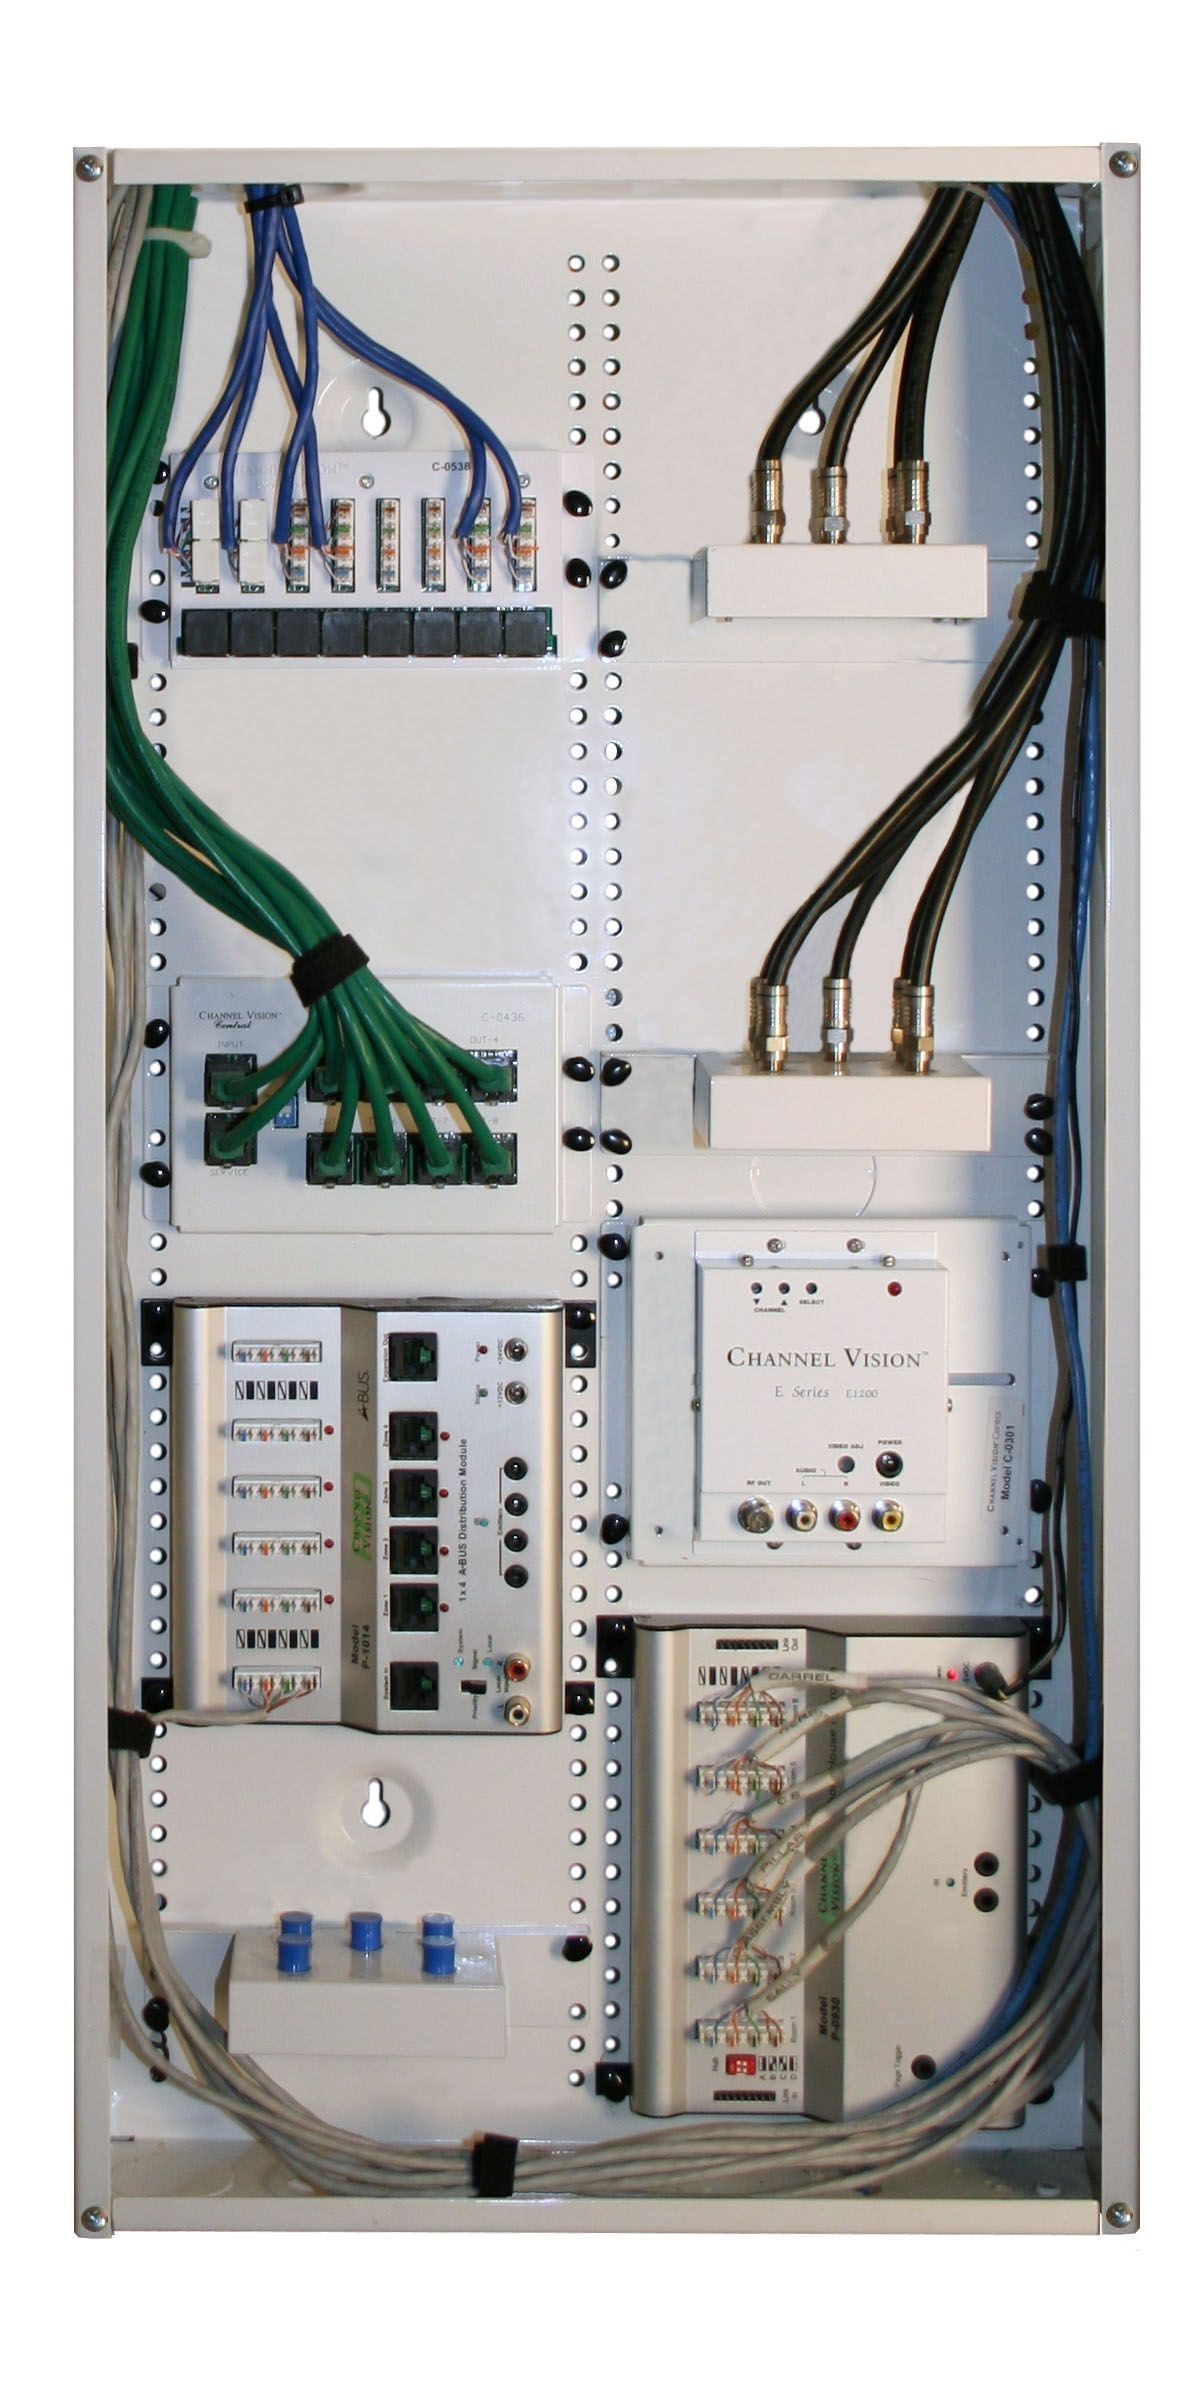 medium resolution of structured wiring cable distribution panel for home tv internet audio and communications